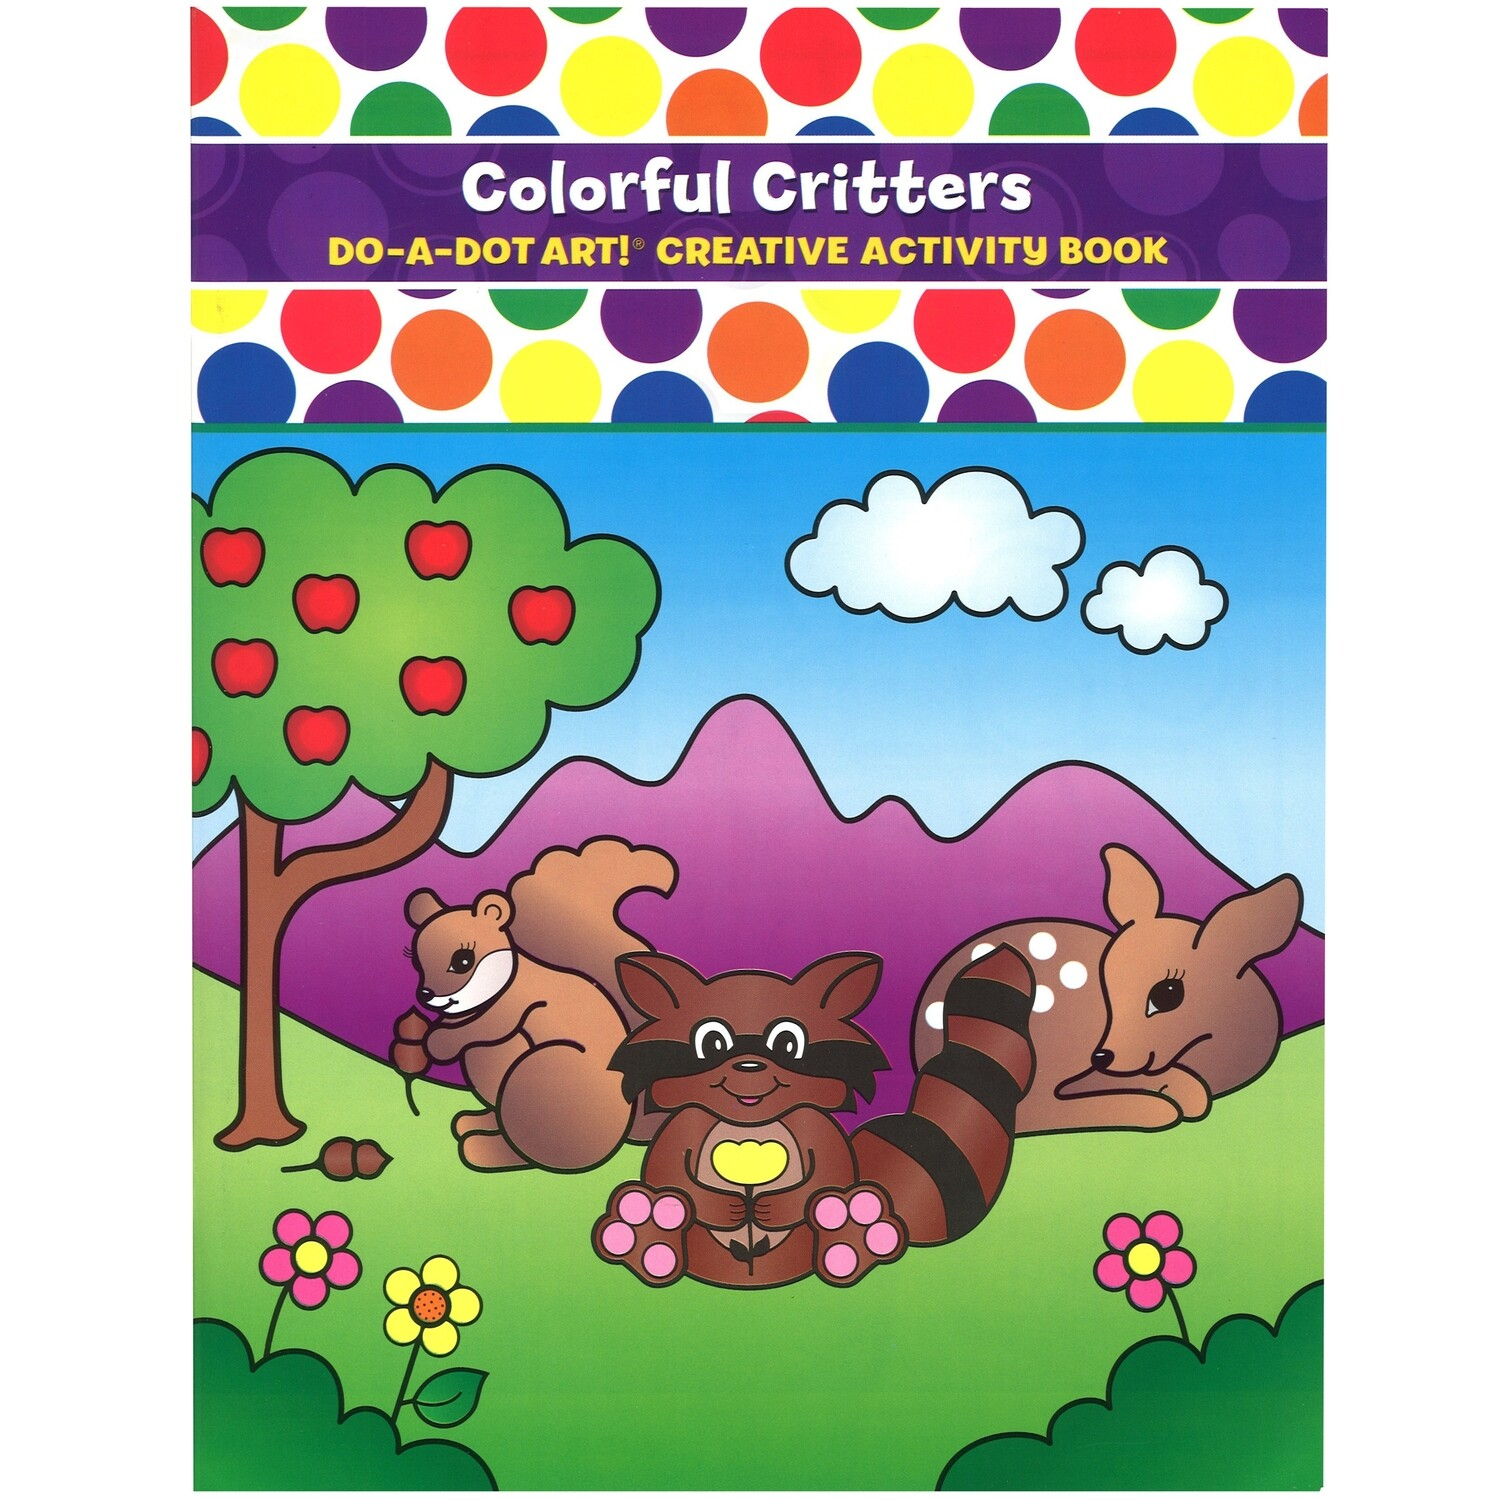 Do-a-Dot Colorful Critters